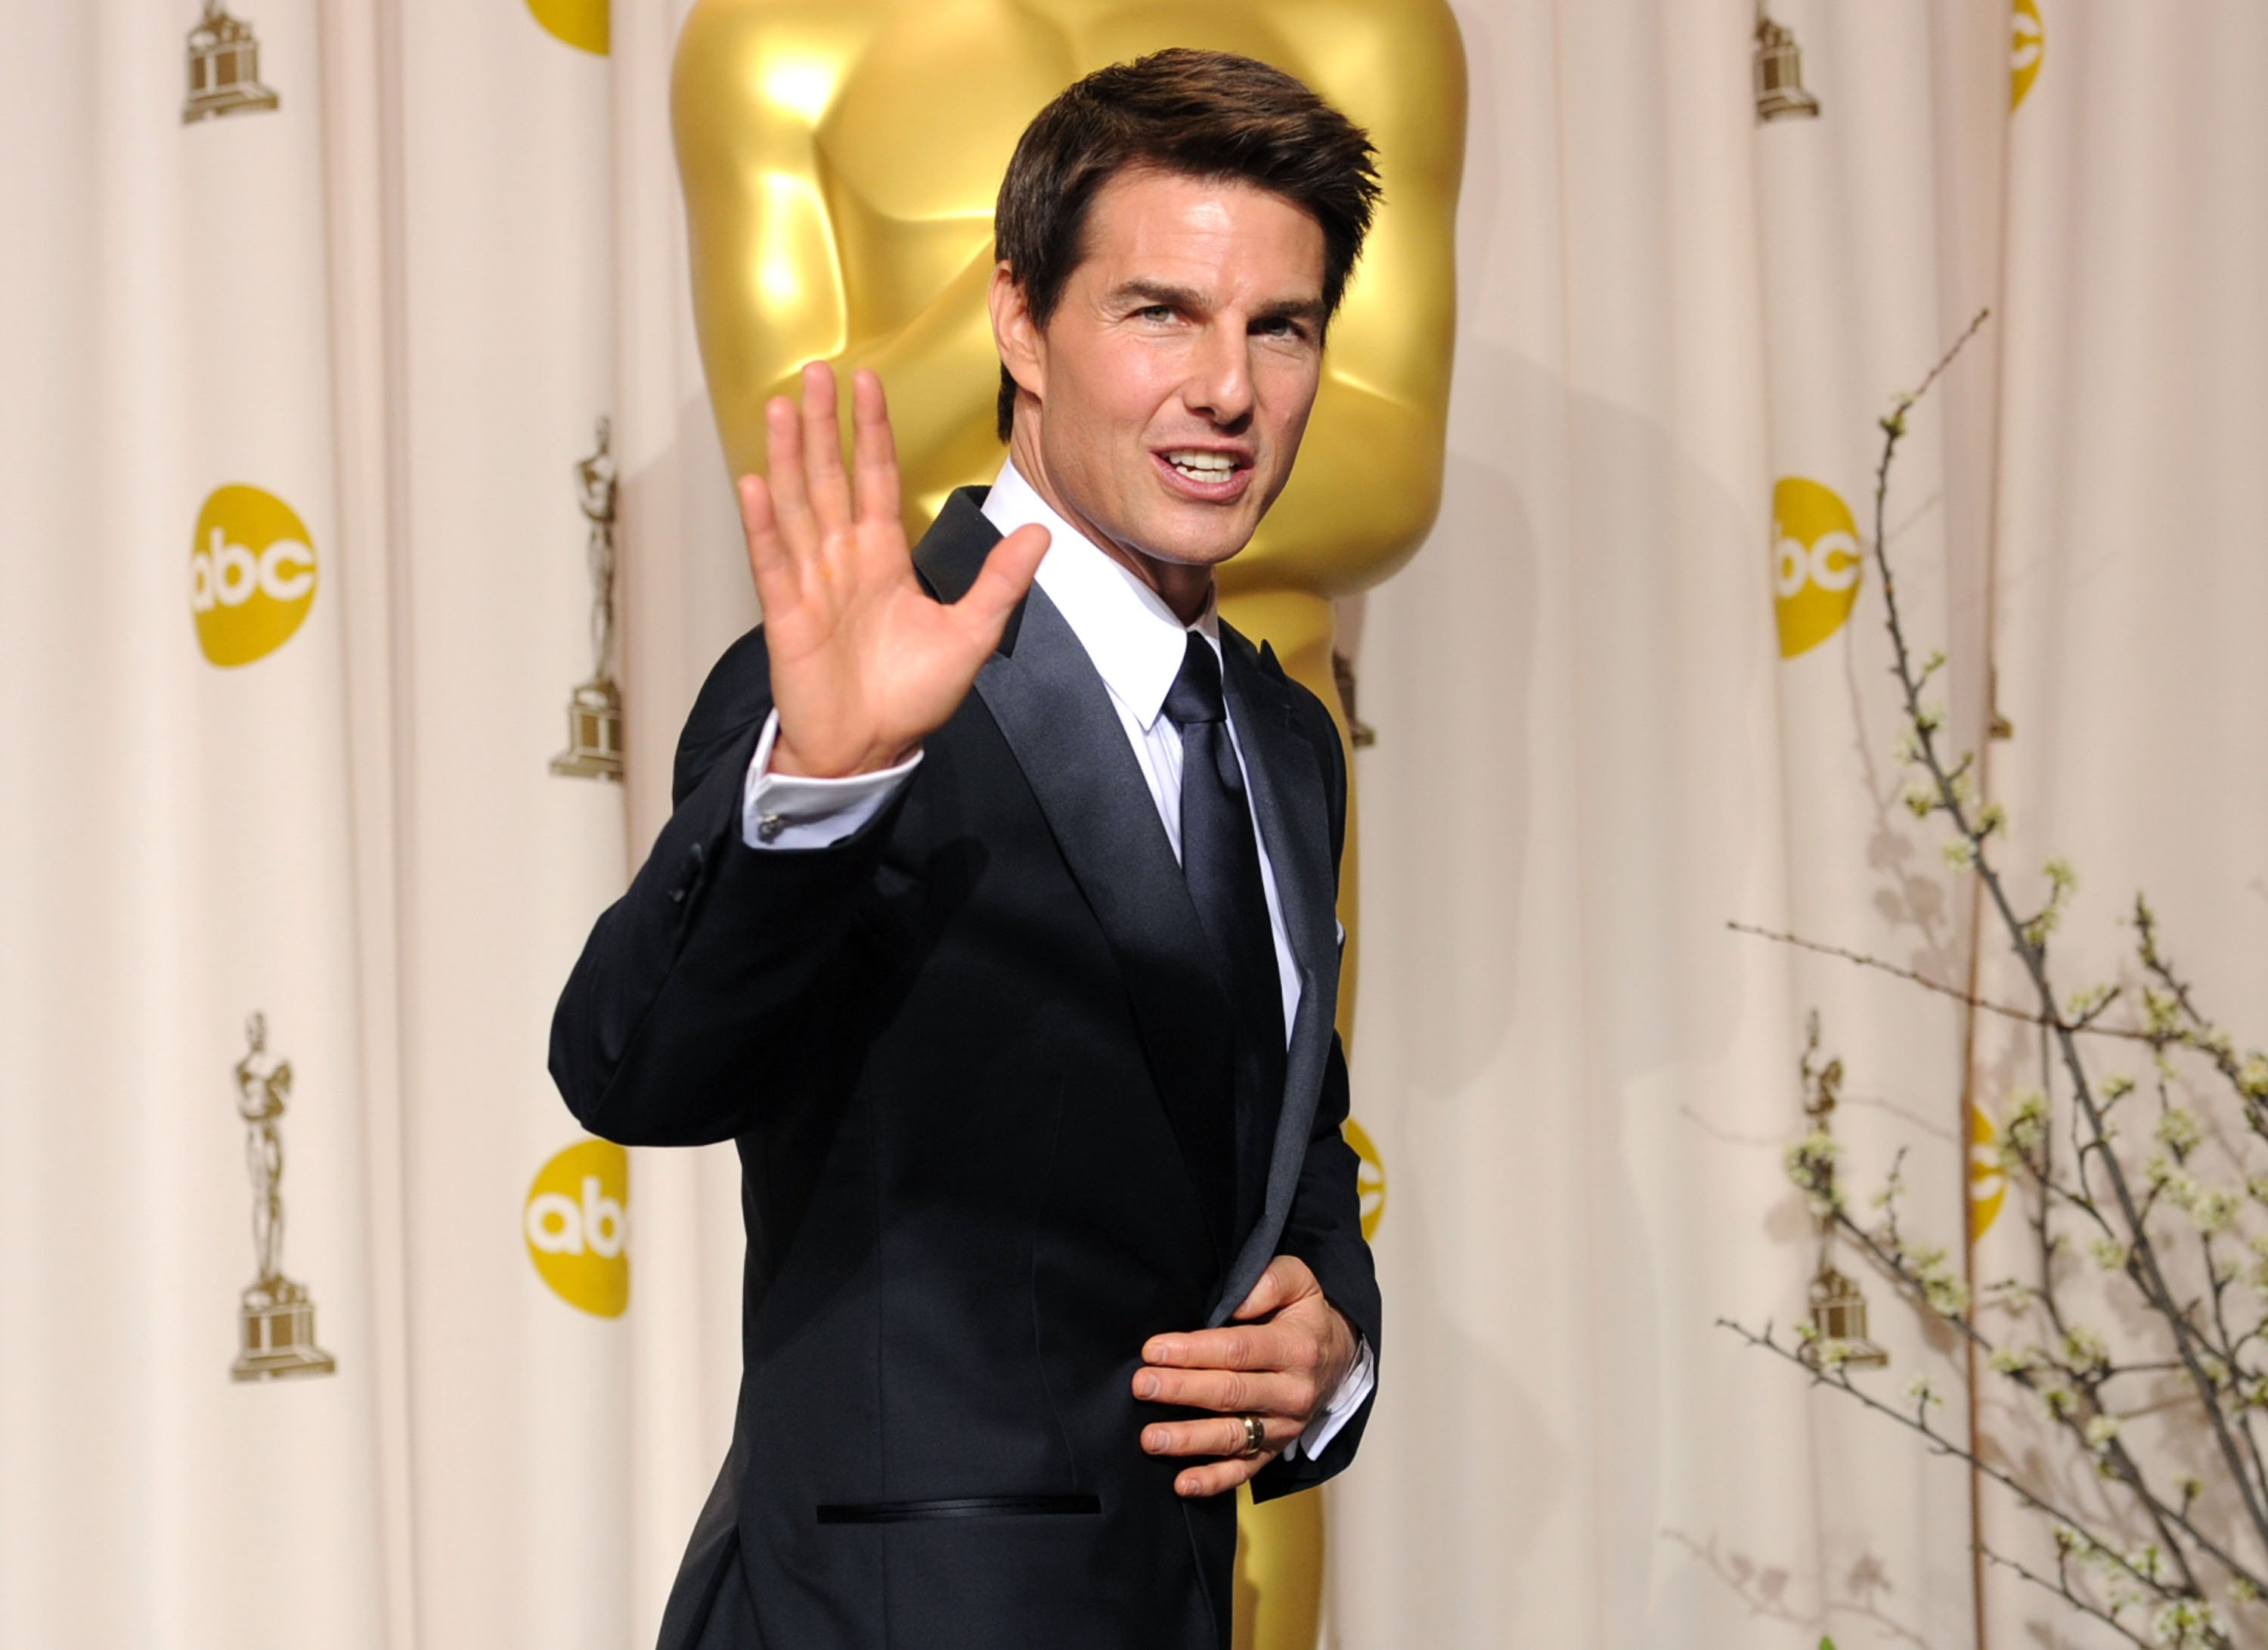 Actor Tom Cruise poses in the press room at the 84th Annual Academy Awards held at the Hollywood & Highland Center on February 26, 2012. | Photo: Getty Images